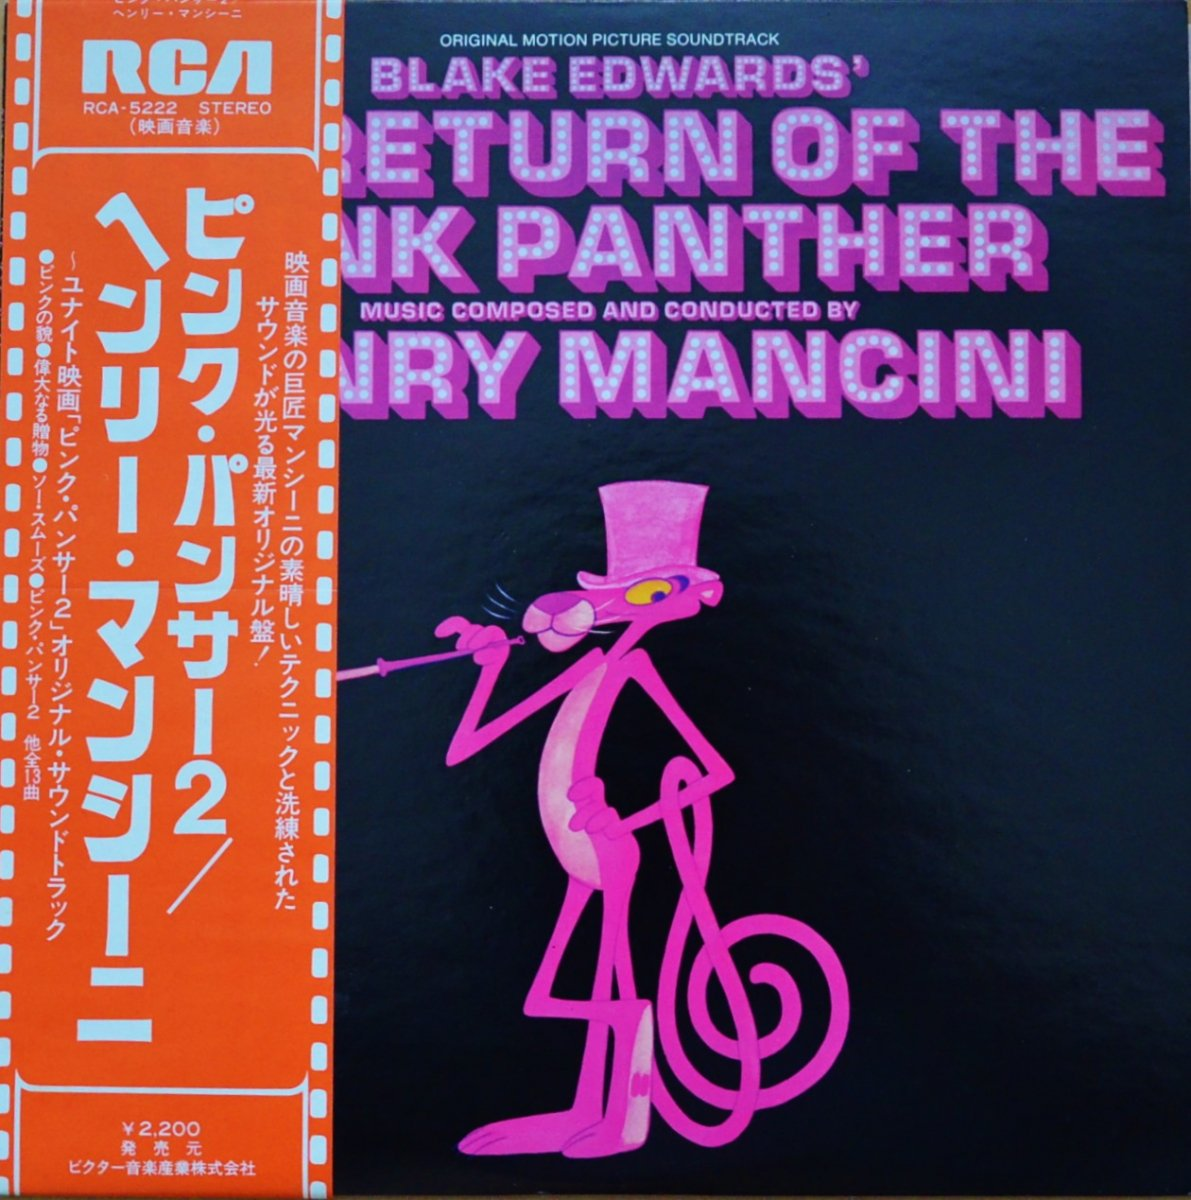 O.S.T. (HENRY MANCINI) / BLAKE EDWARDS' THE RETURN OF THE PINK PANTHER (LP)